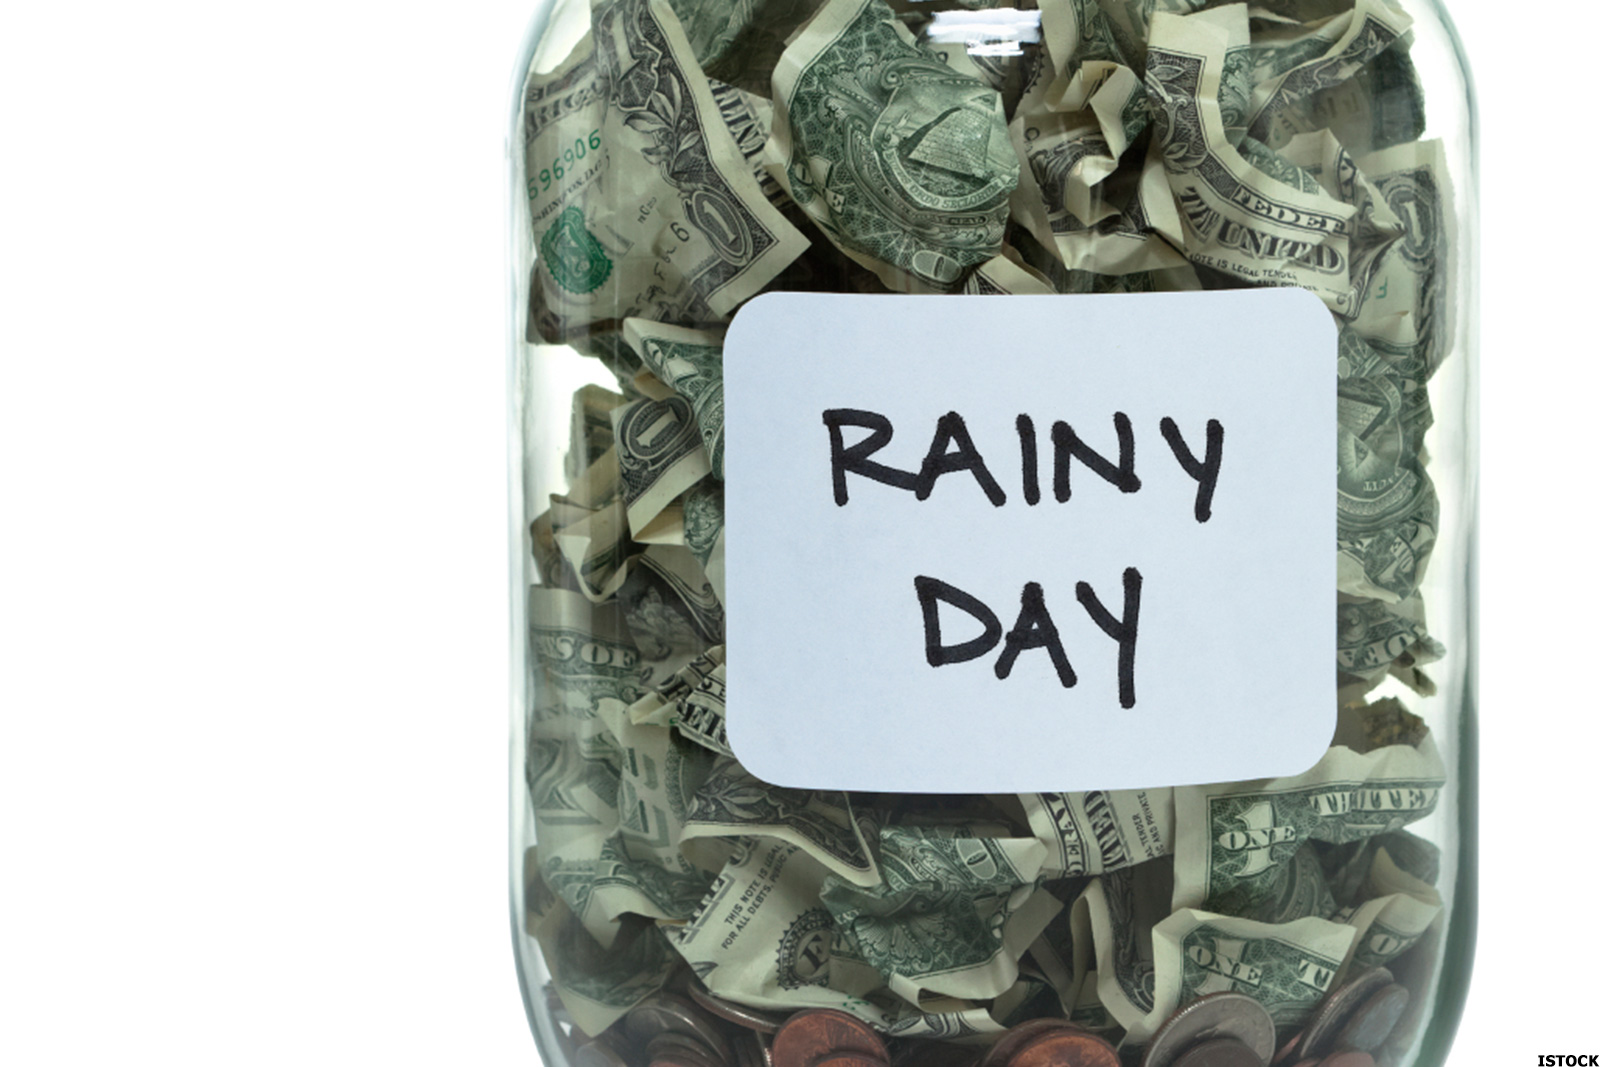 How To Get Your Rainy Day Fund To Last For A Whole Stormy